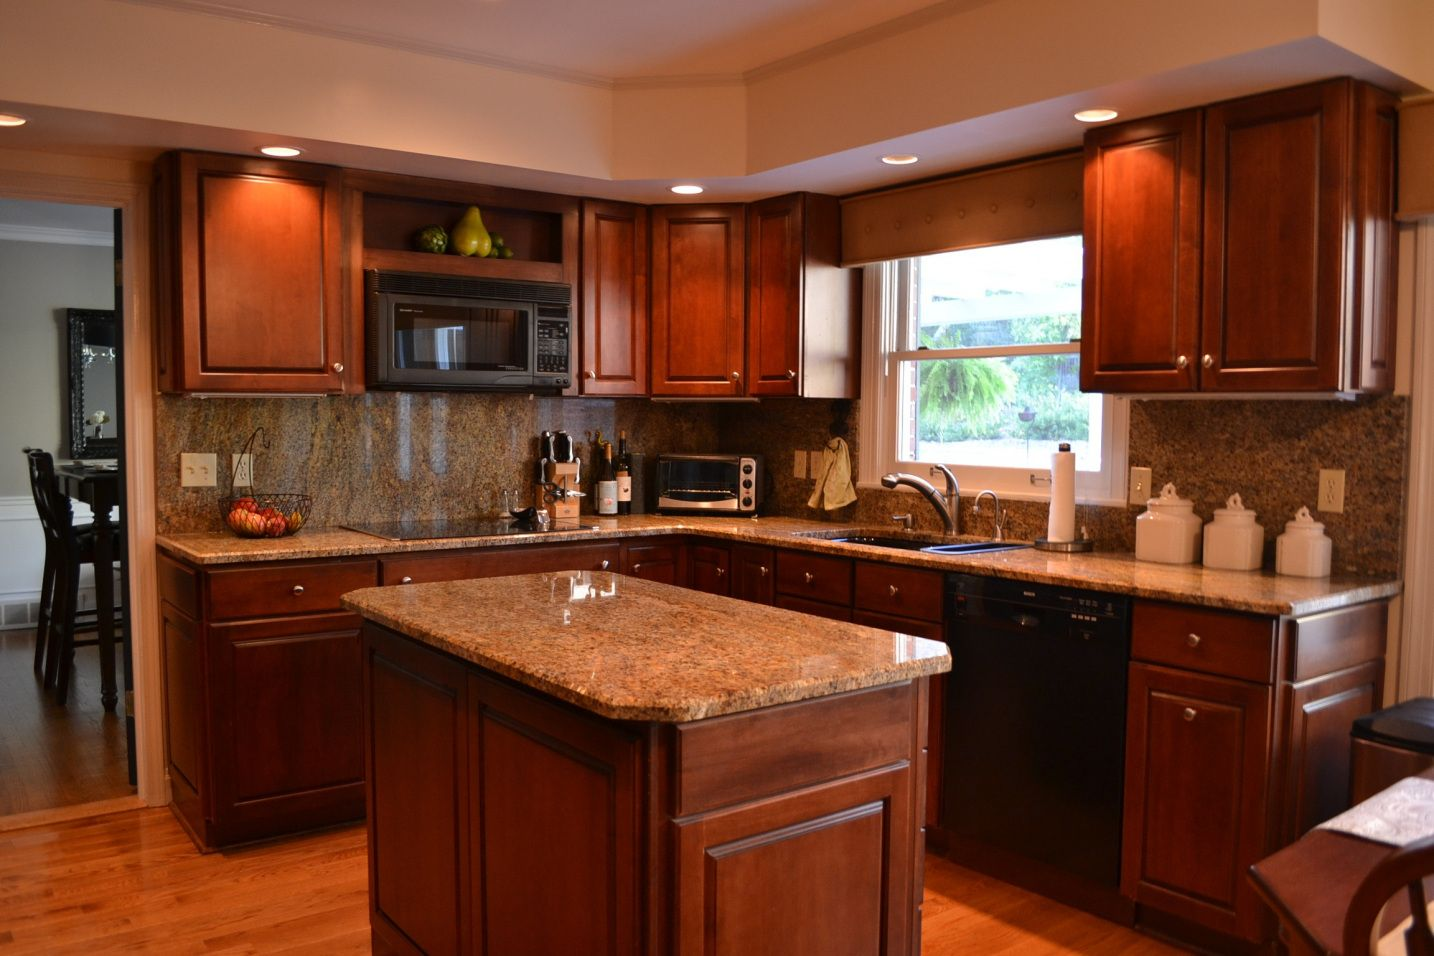 Find This Pin And More On Kitchen Makeover New Design By Heru0387